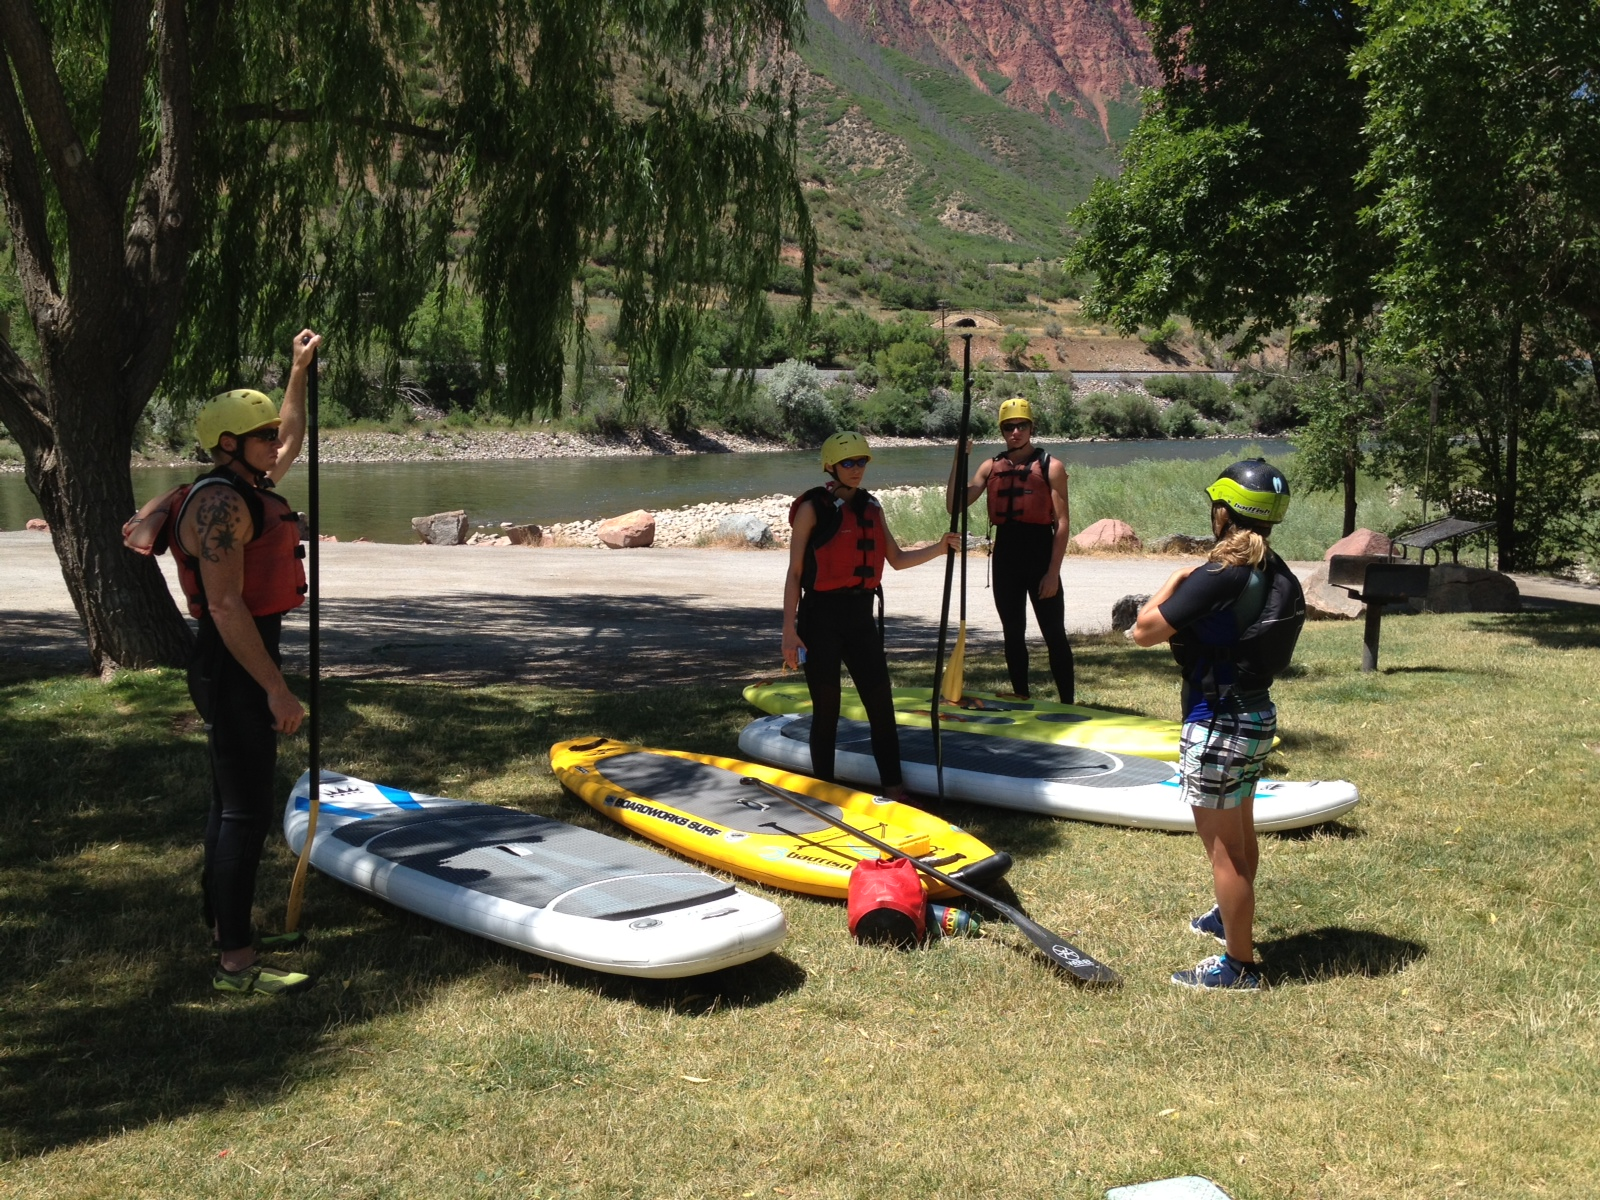 Our guide, Brittany Parker, leads a SUP orientation. The excitement is building to get on the river!